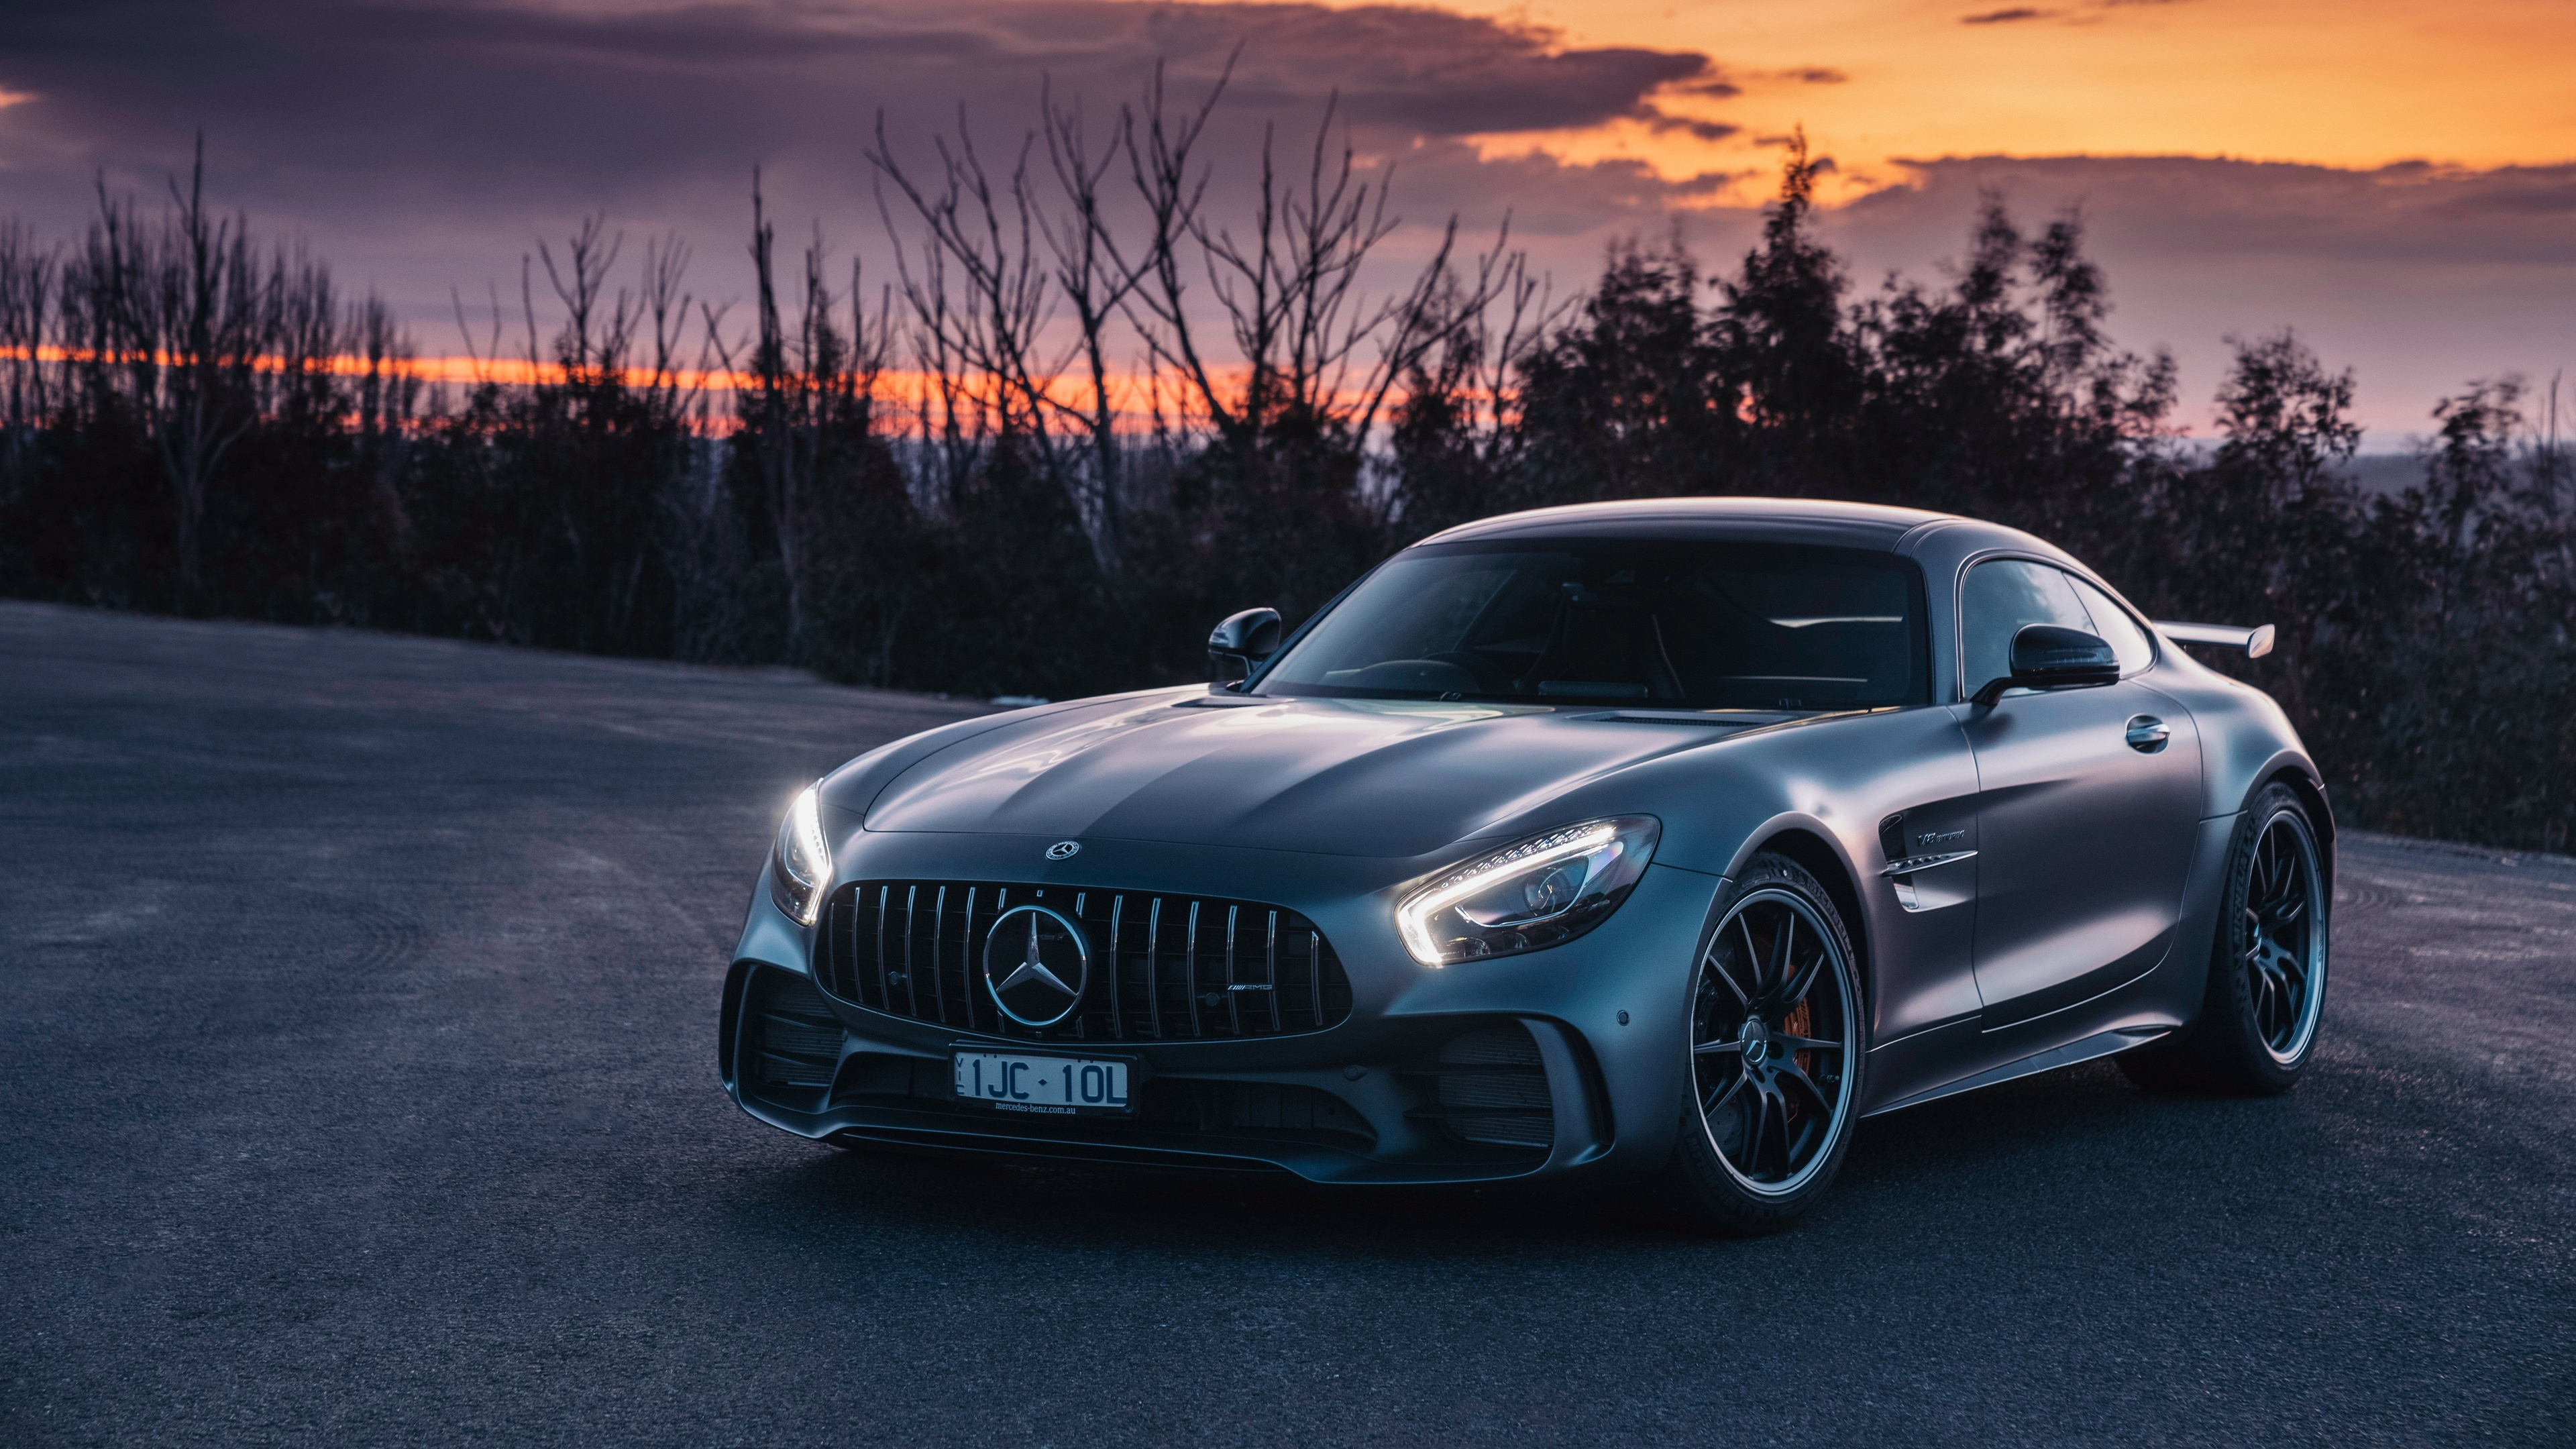 amg gtr mercedes benz 2018 1539109138 - AMG GTR Mercedes Benz 2018 - mercedes wallpapers, mercedes benz wallpapers, hd-wallpapers, cars wallpapers, amg wallpapers, 4k-wallpapers, 2018 cars wallpapers